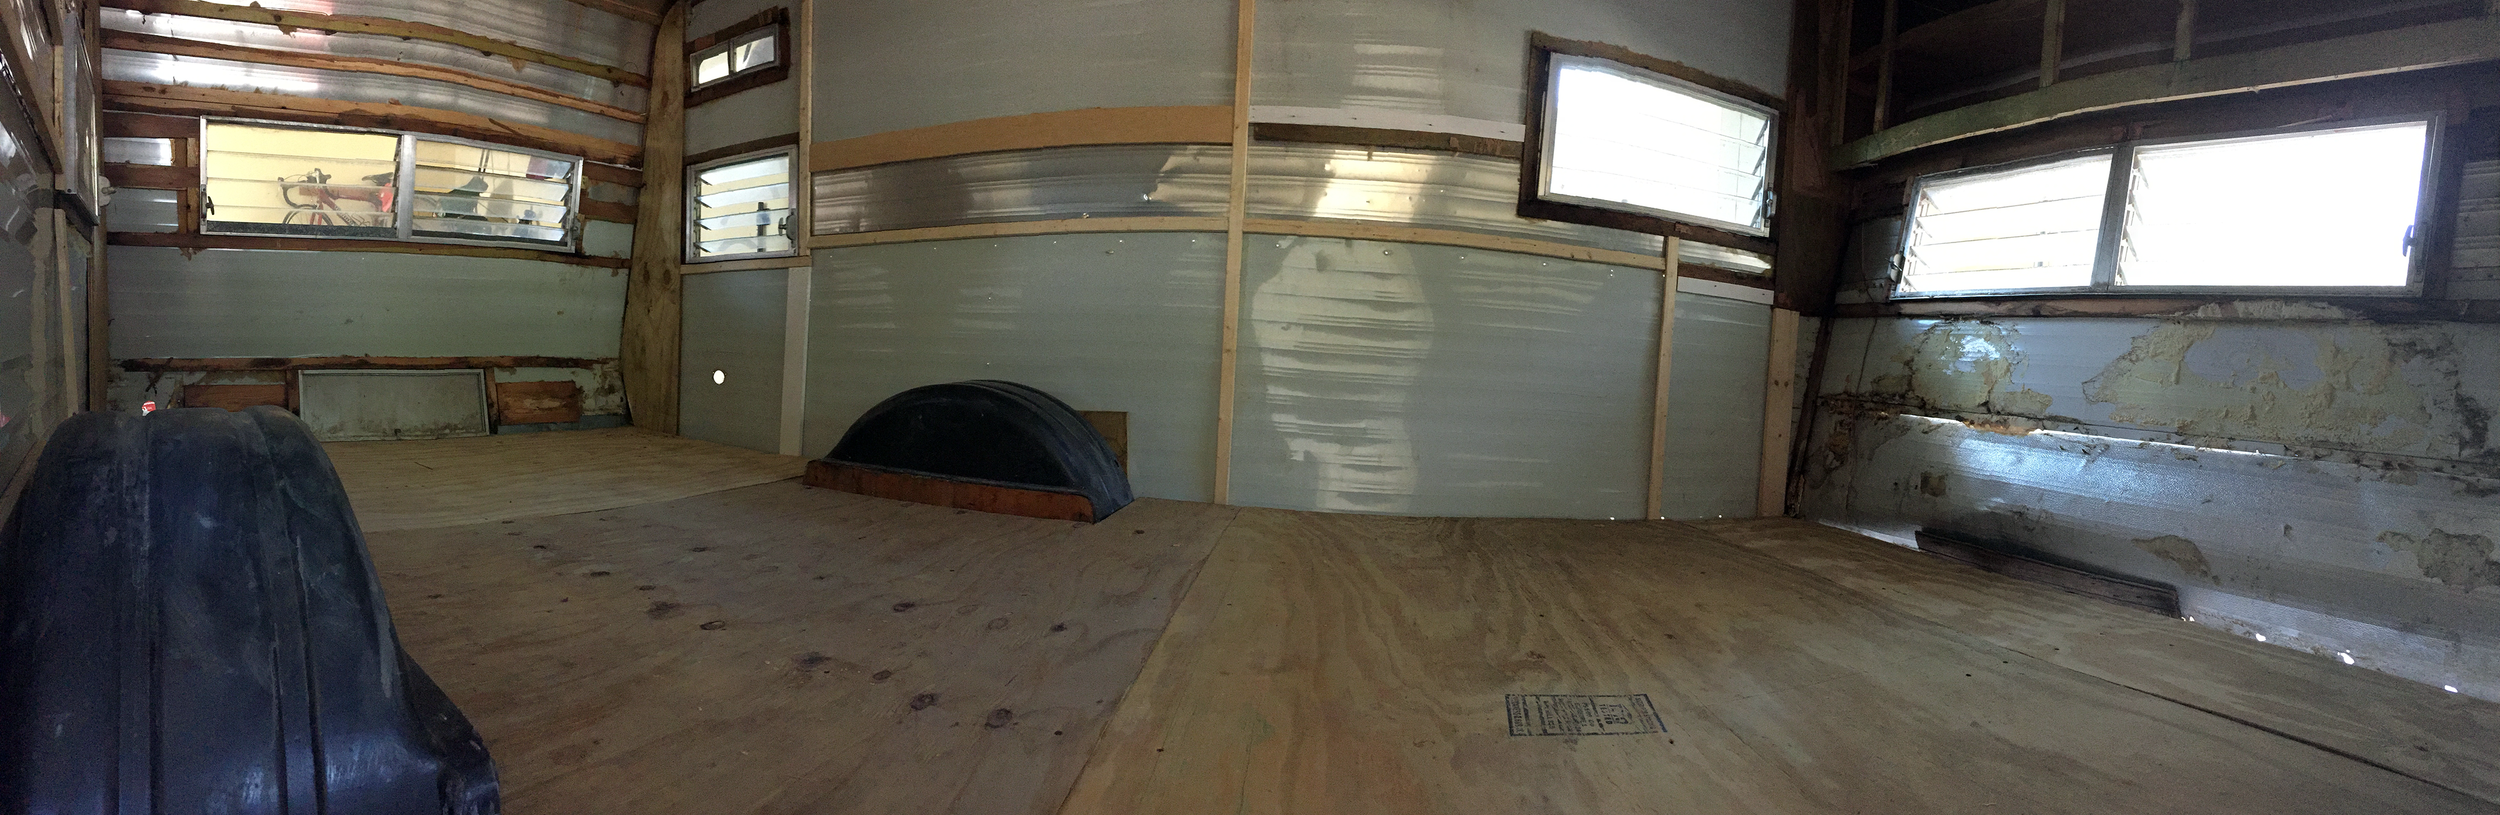 The Cameo (view from the door) after plywood subfloor install.